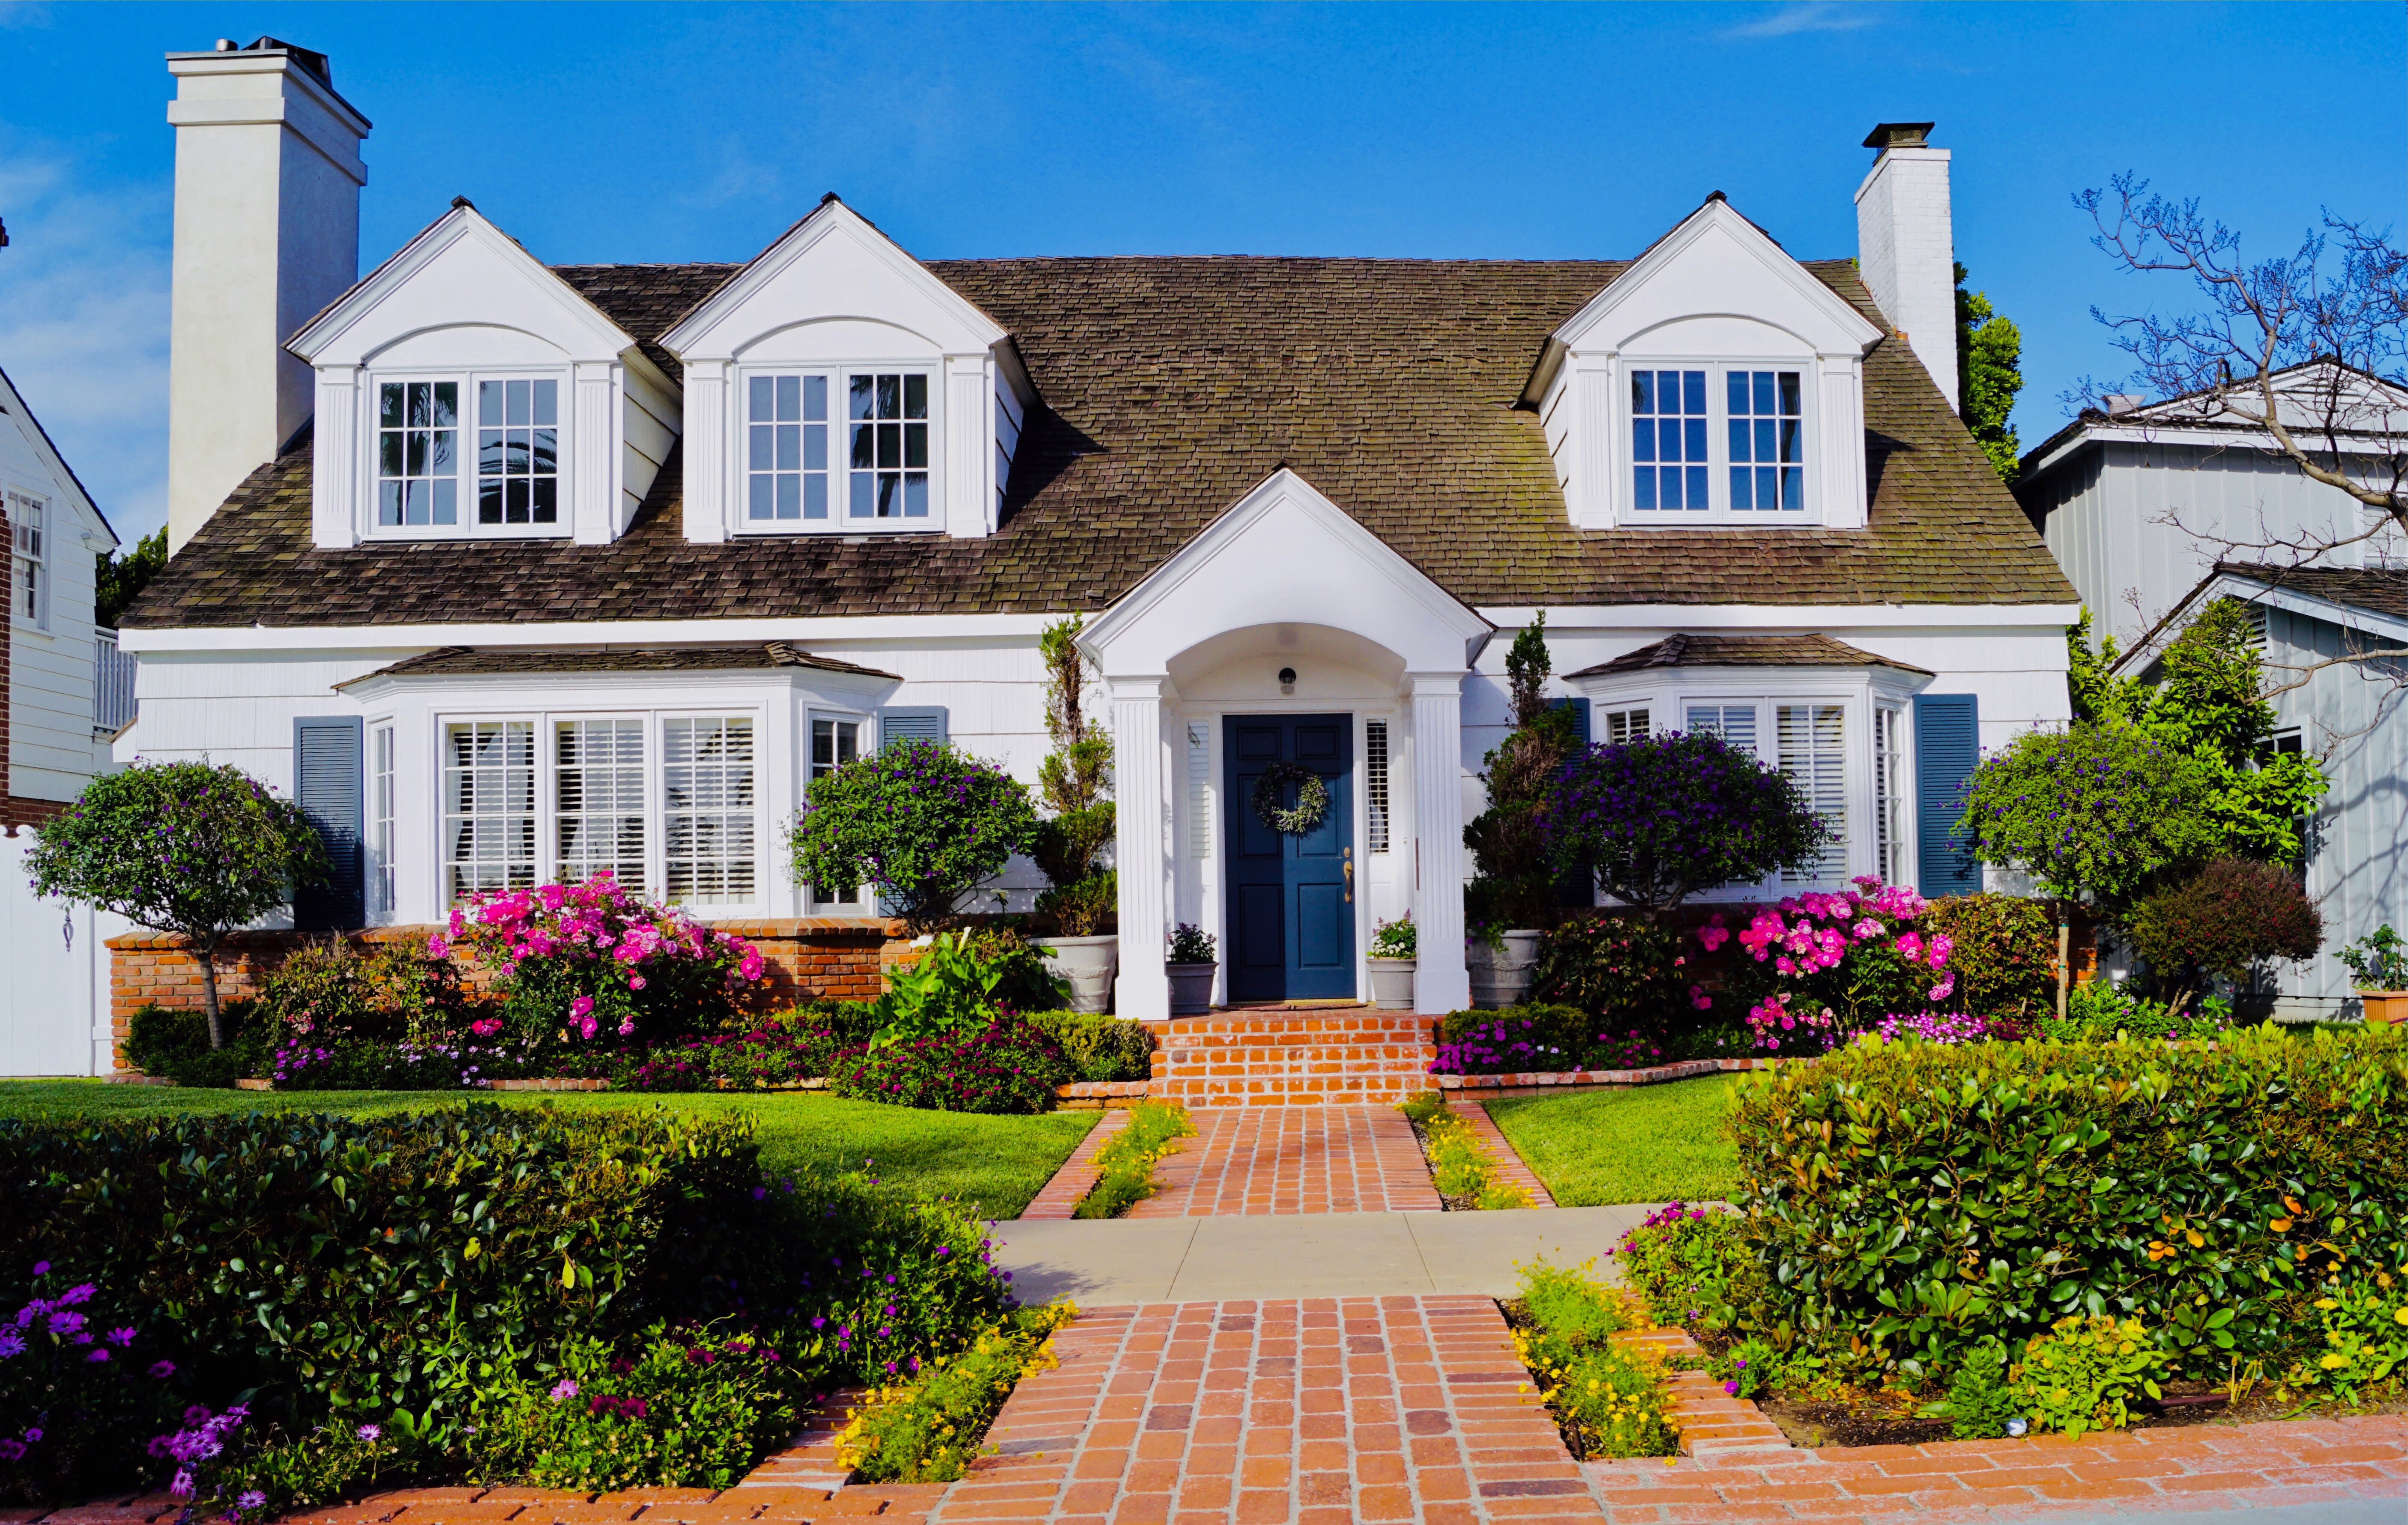 Moving 101: 5 Tips to Help Your Offer Stand Out in a Seller's Market